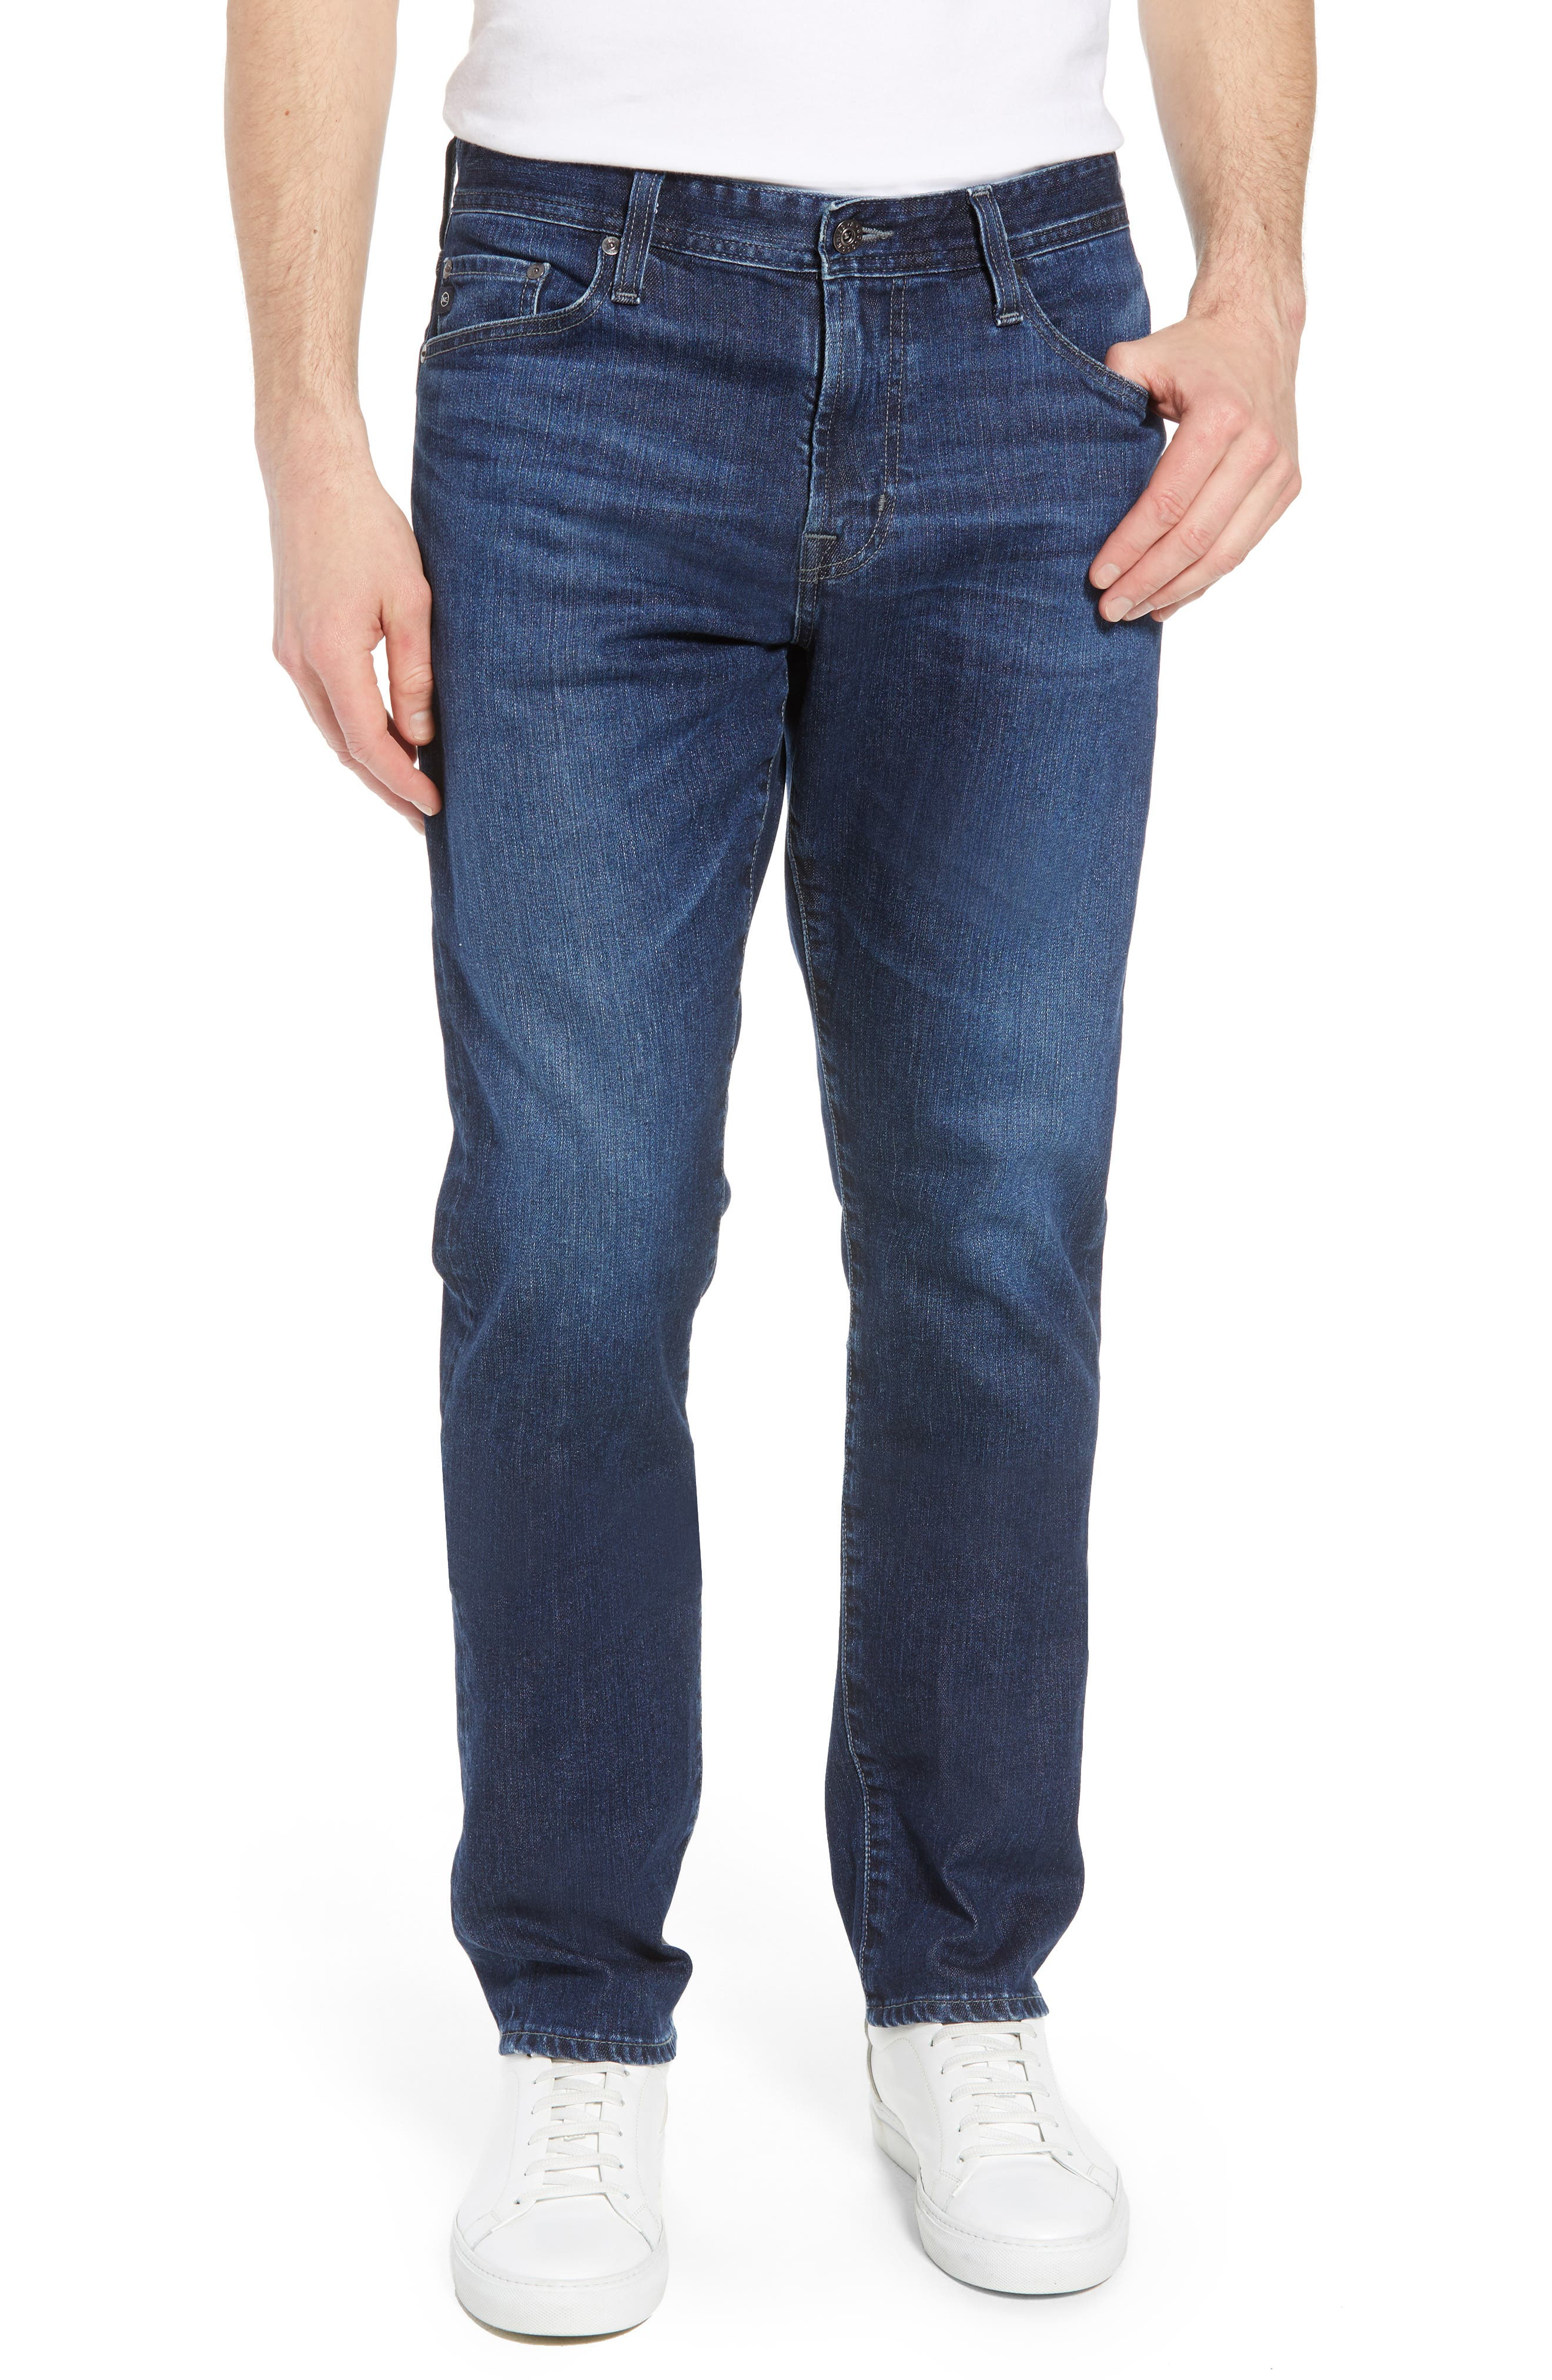 Ives Straight Leg Jeans,                         Main,                         color, LAKEVIEW